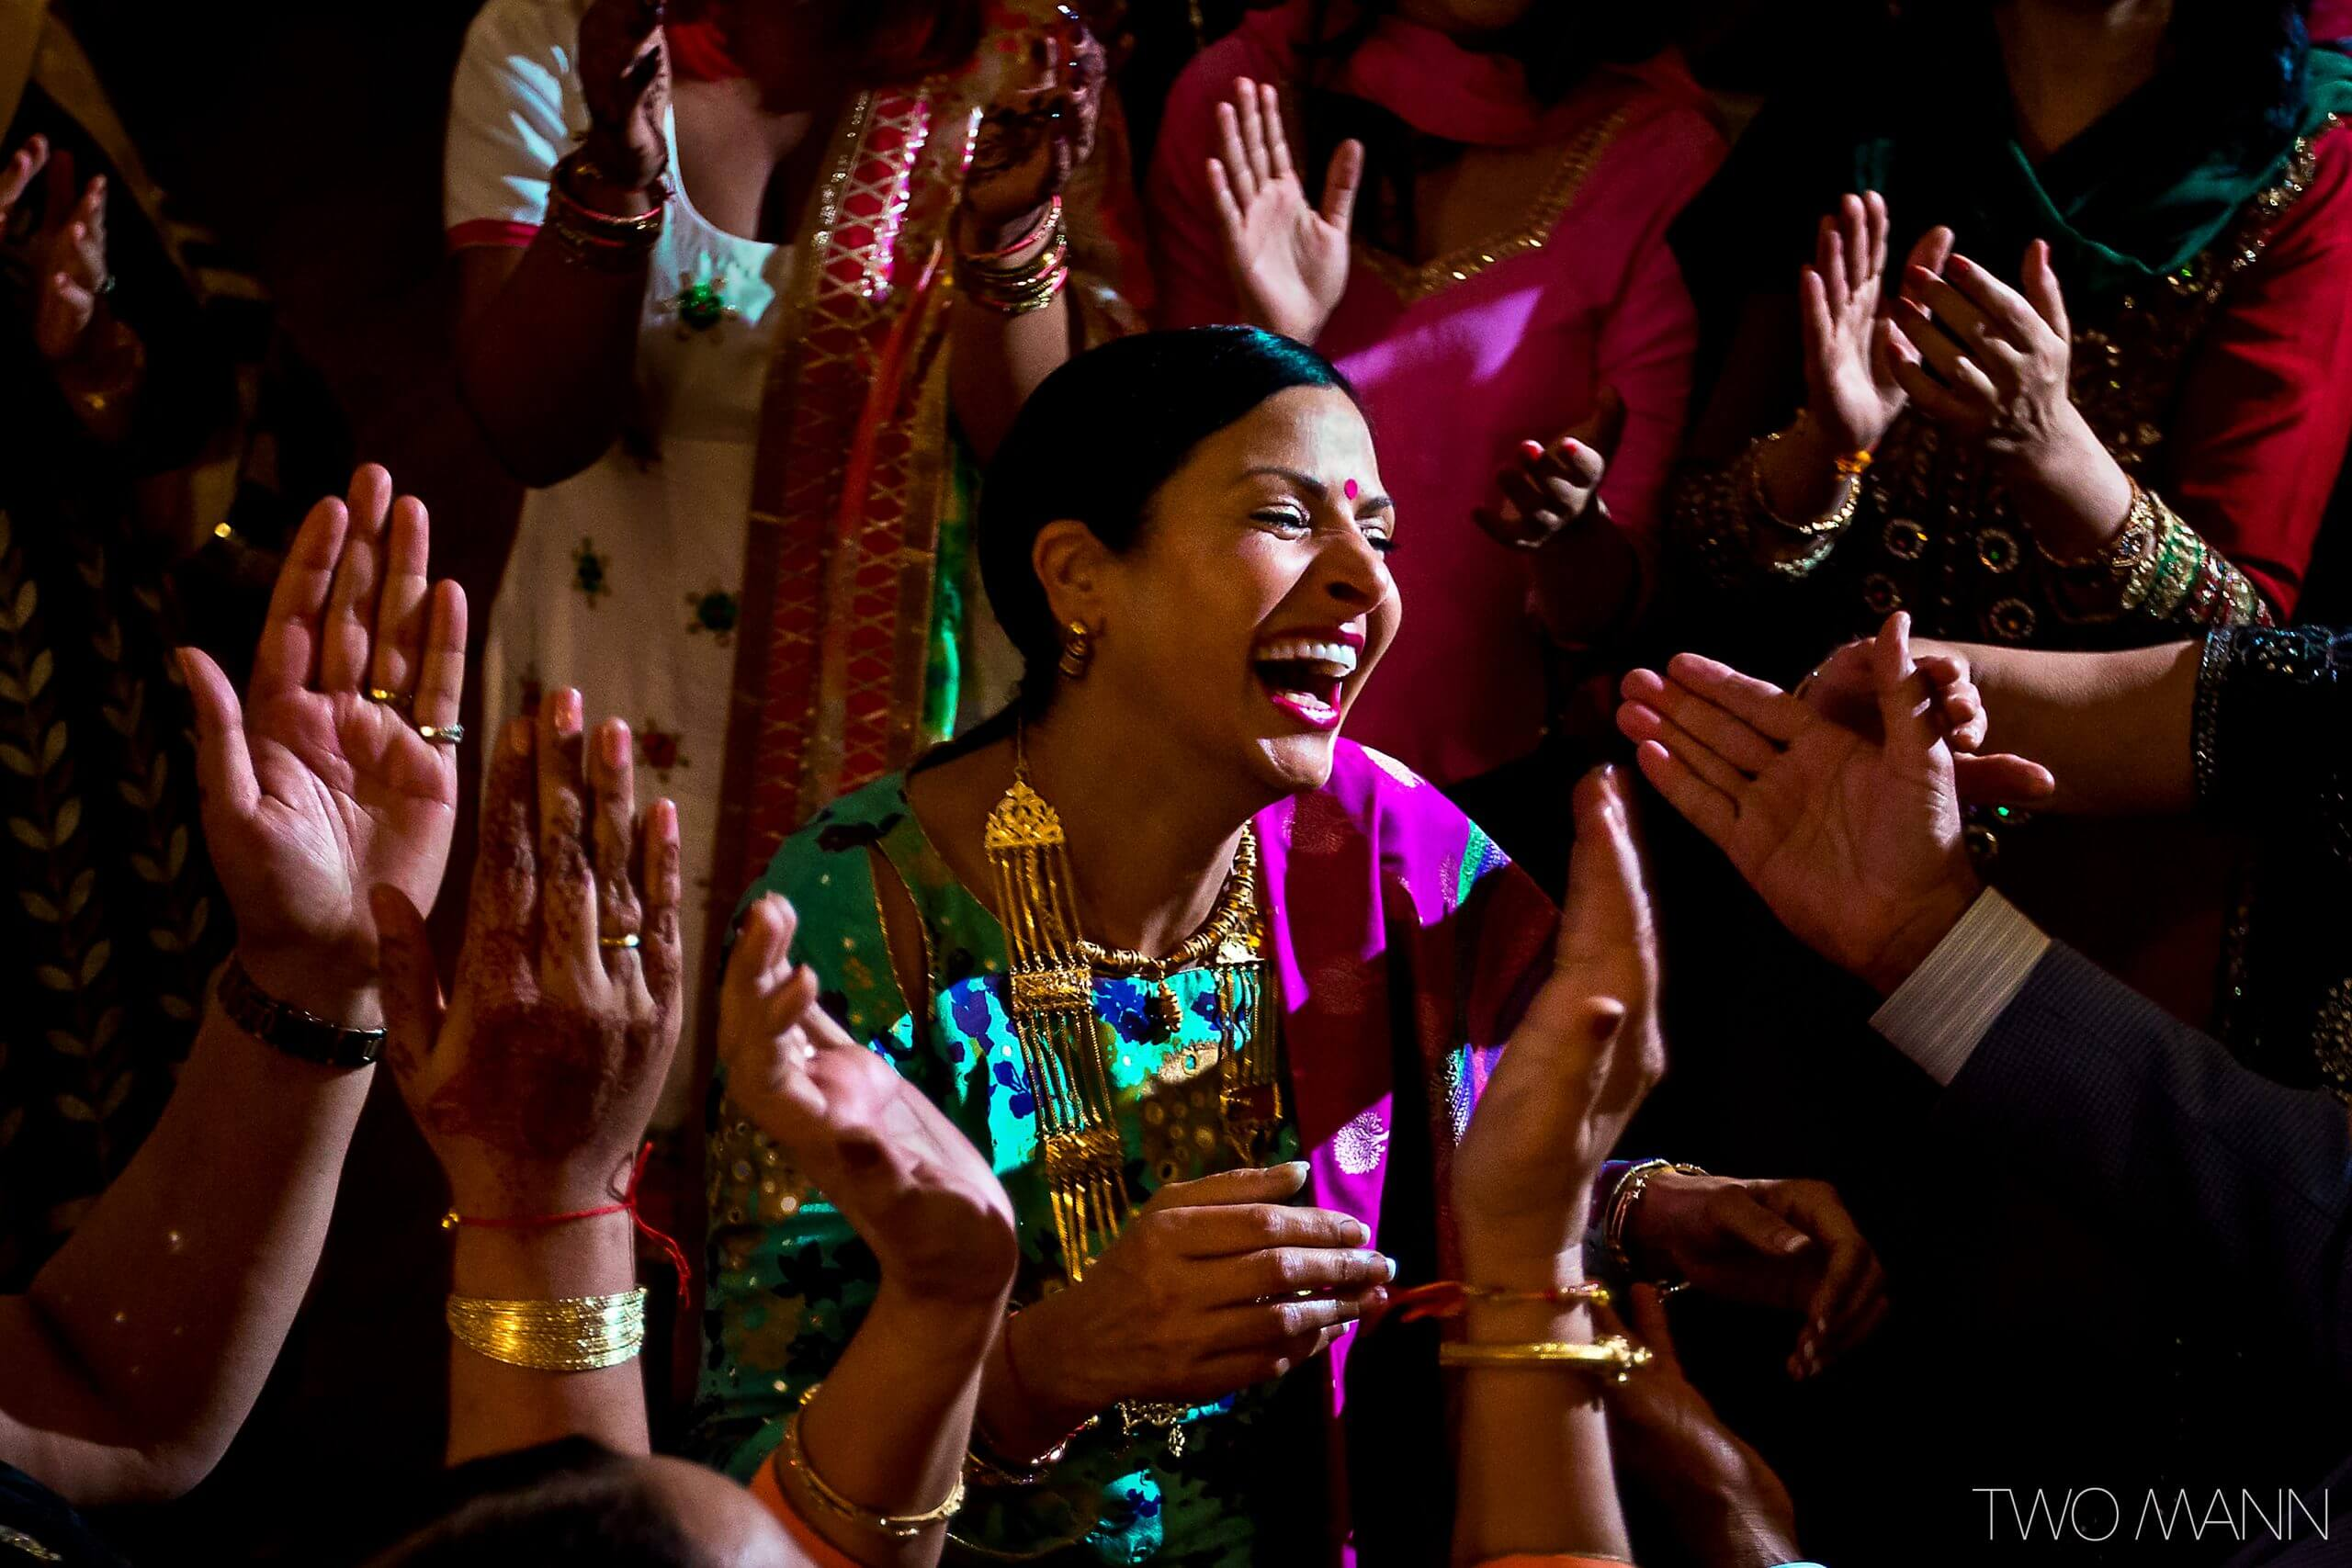 guests welcoming a lady at an Indian wedding ceremony